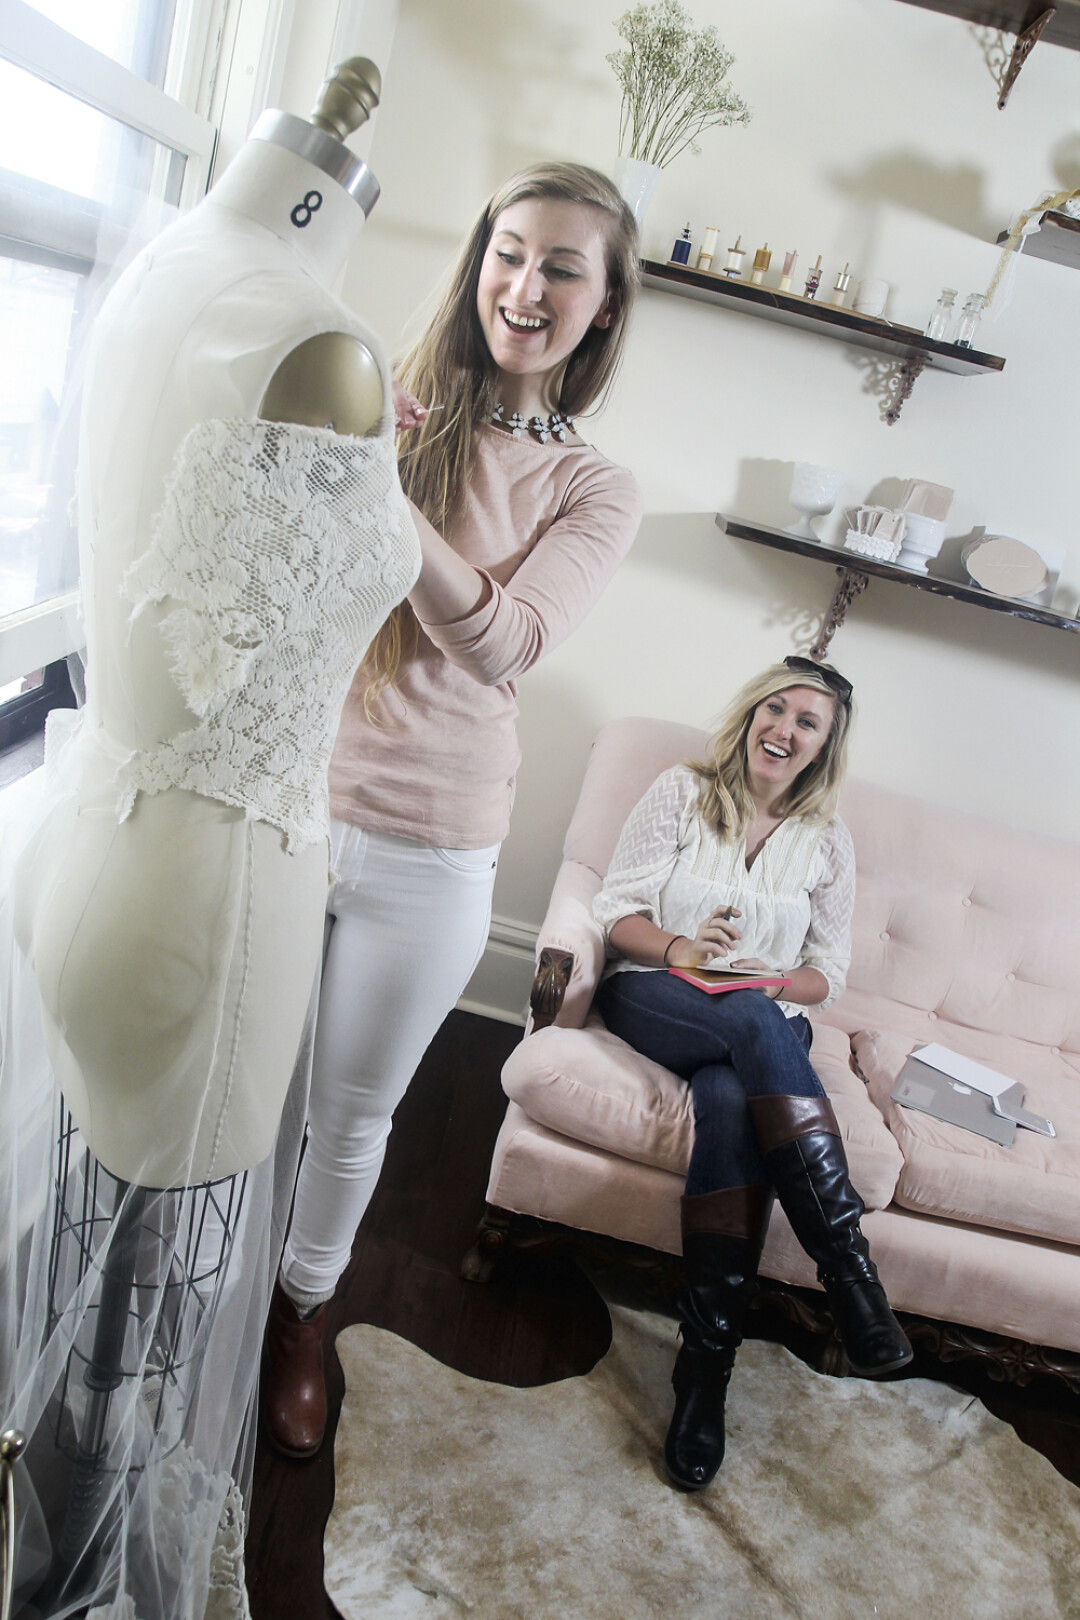 HOW PINTERESTING! Lindsay Ulness, left, and Sarah Hrudka operate Linyage, a wedding dress design house.